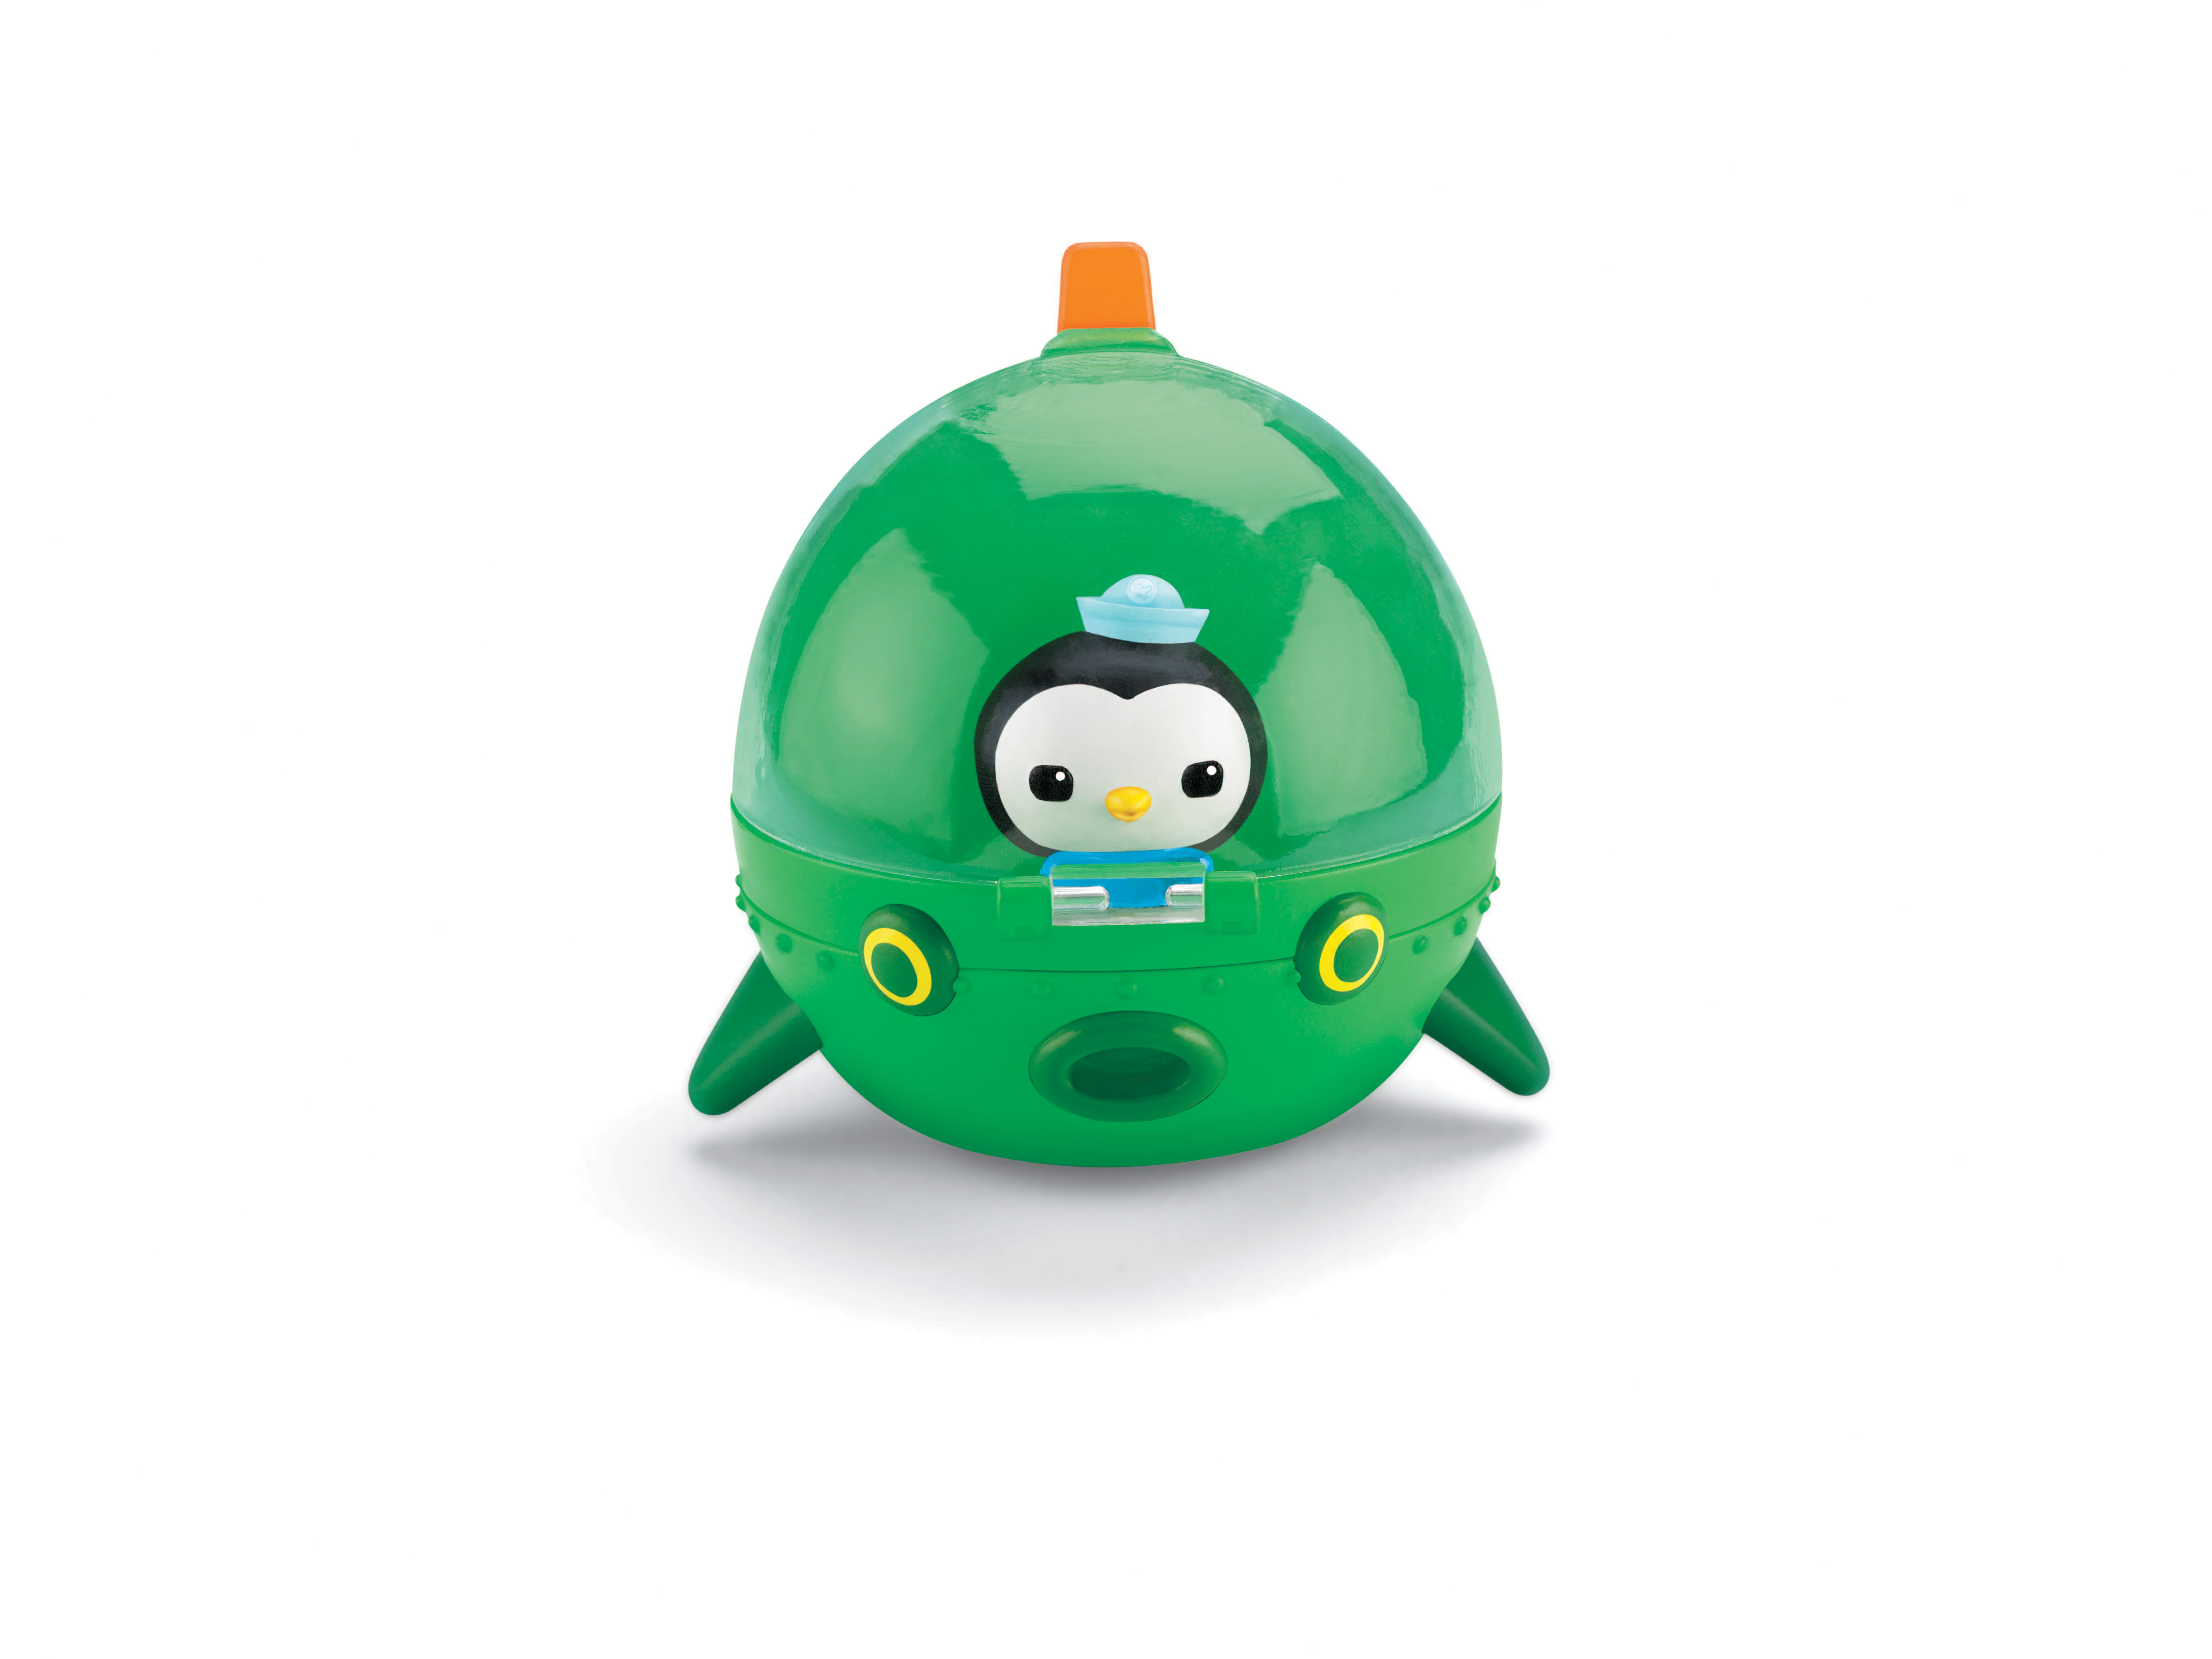 Fisher-Price Octonauts Gup-E and - 1423.4KB